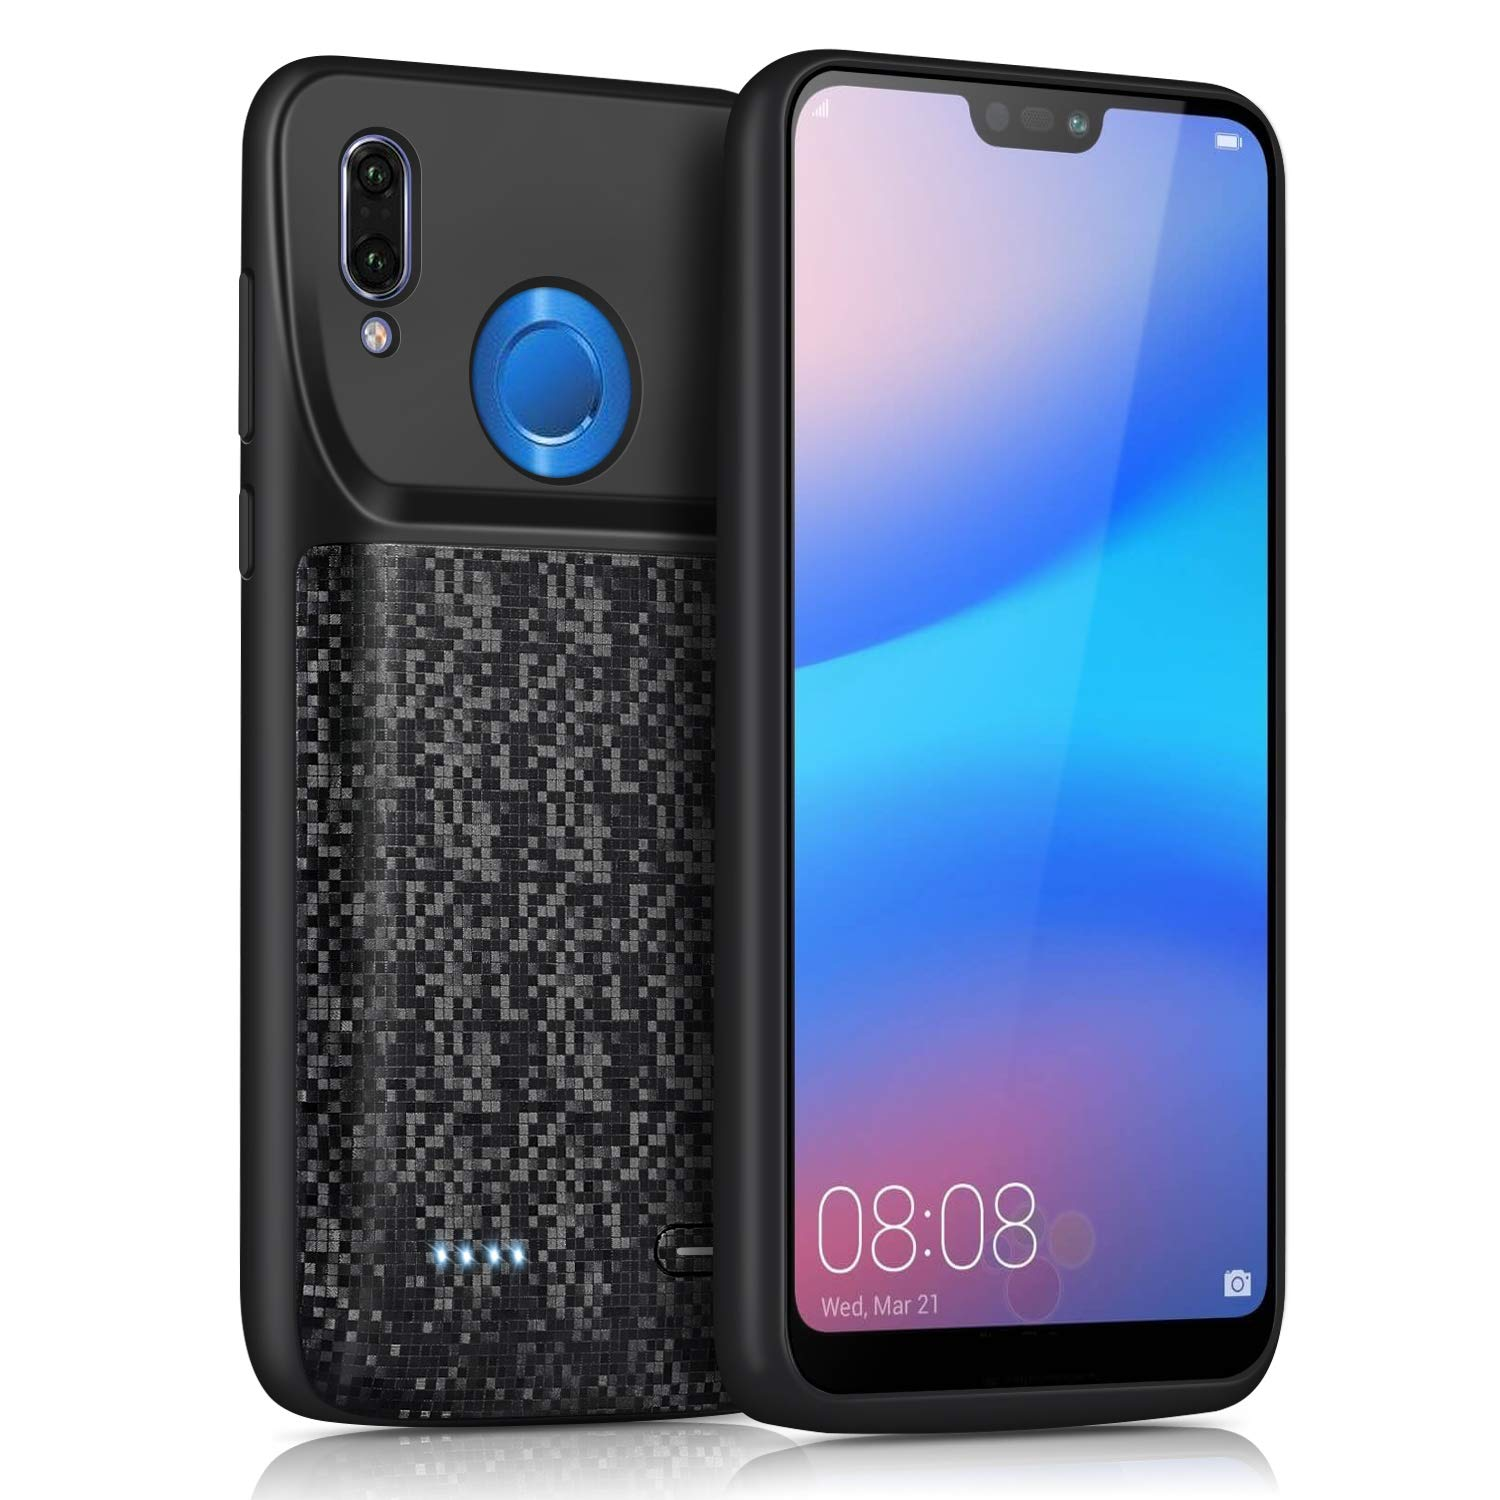 5000mah Shockproof <font><b>battery</b></font> charger <font><b>case</b></font> For Honor 8 9 10 Lite External charger Cover Backup power For <font><b>Huawei</b></font> P30 <font><b>P20</b></font> Lite Pro image